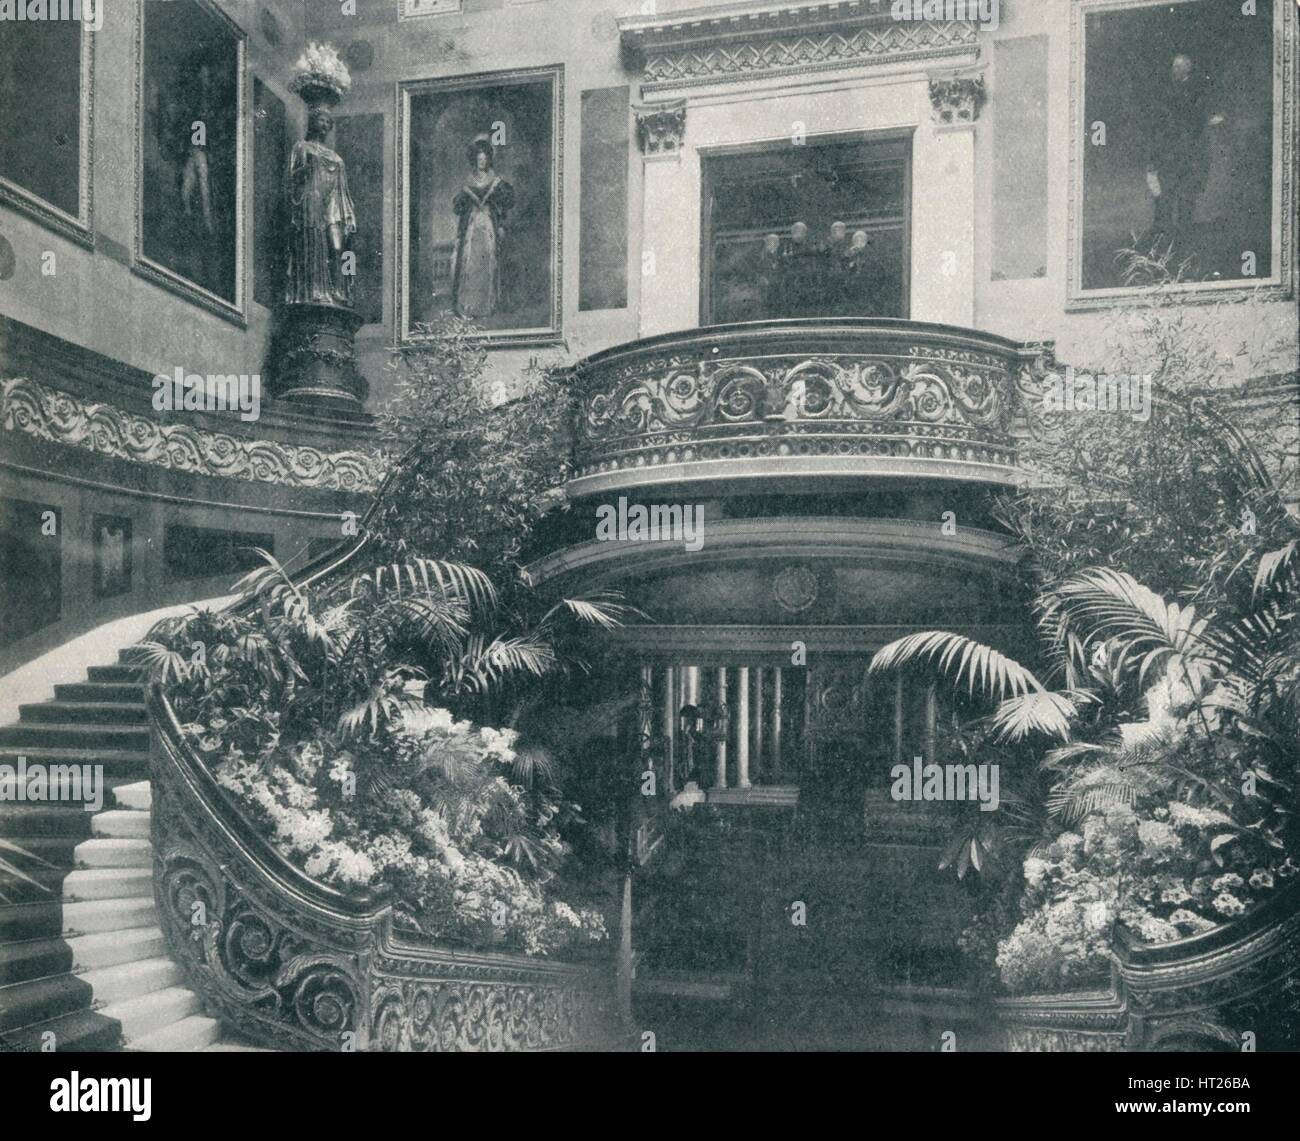 'The Grand Staircase at Buckingham Palace', c1899, (1901). Artist: HN King. Stock Photo